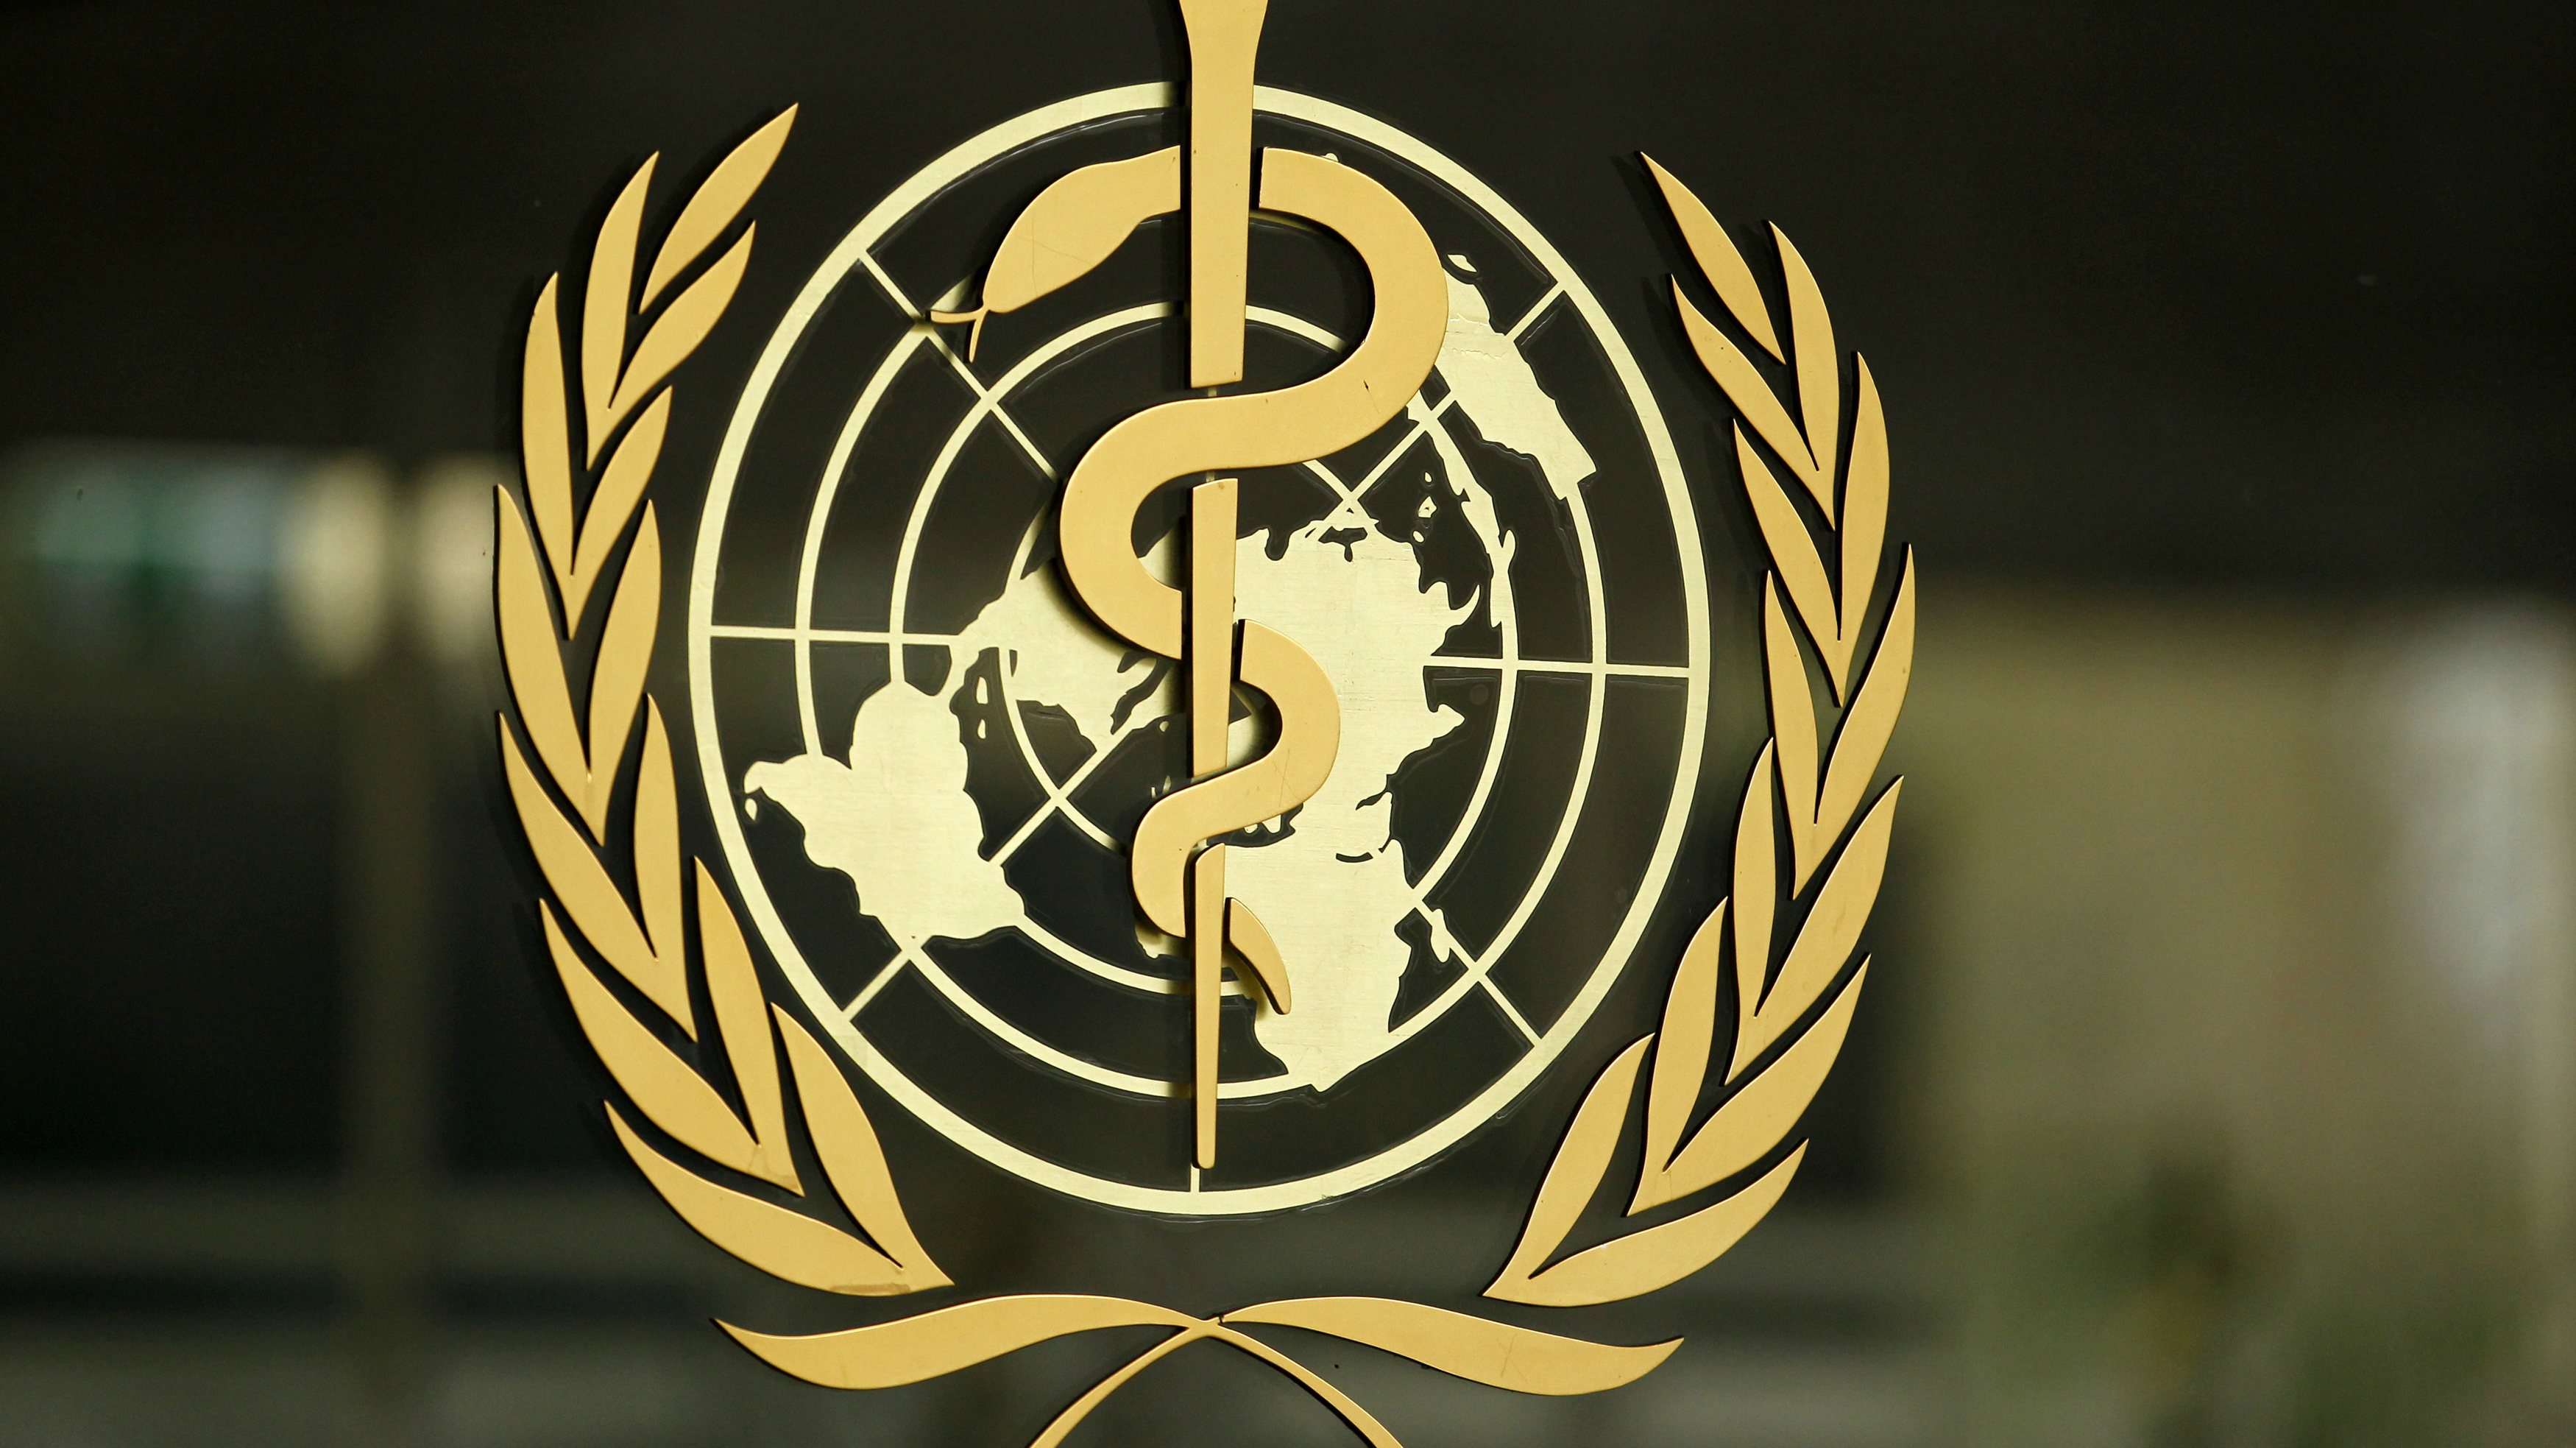 The World Health Organization (WHO) logo is pictured at the entrance of its headquarters in Geneva, January 25, 2015.